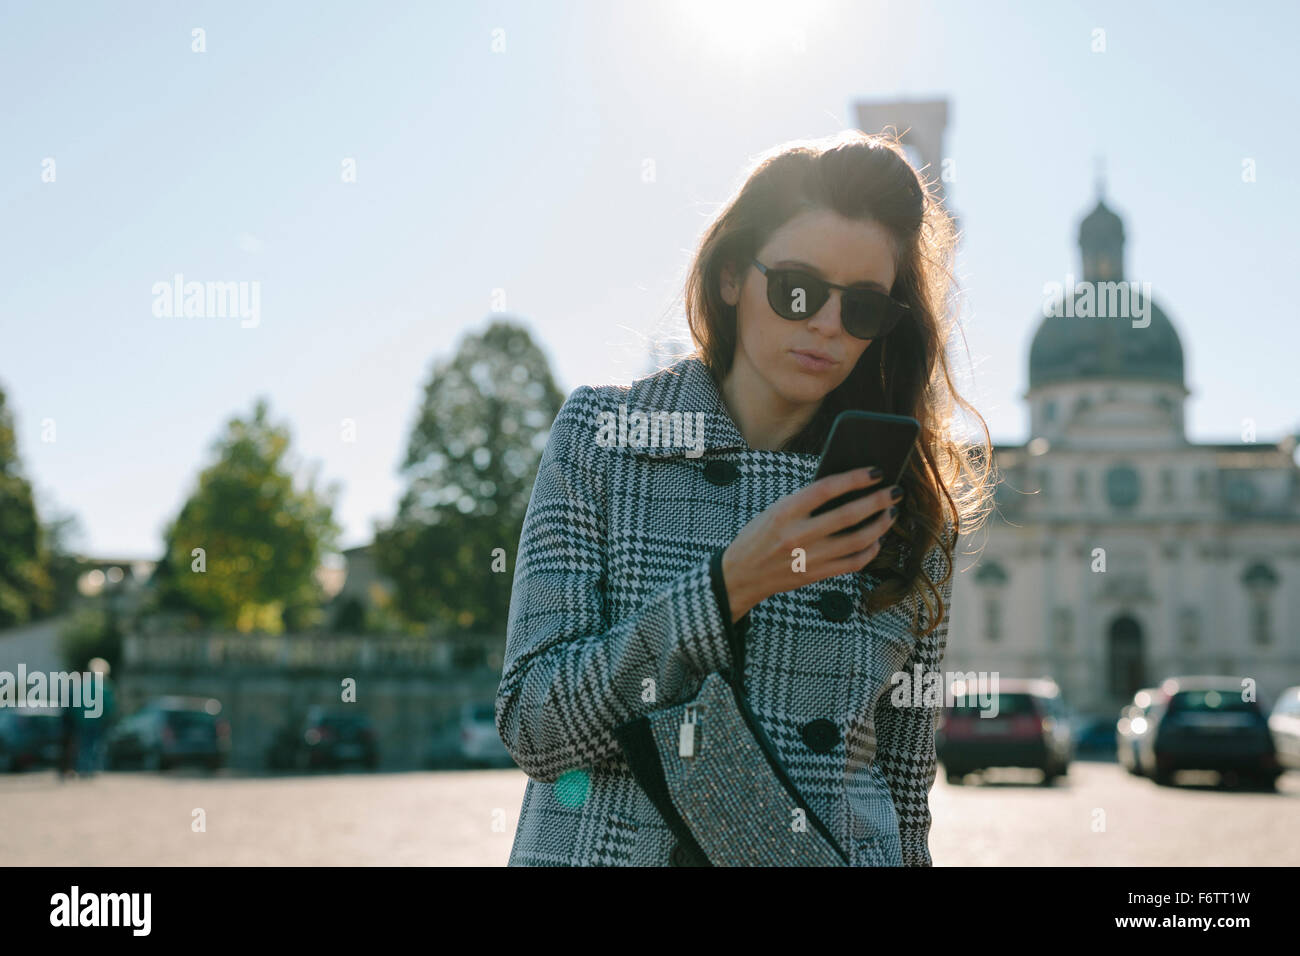 Italy, Vicenza, woman wearing checkered coat and sunglasses looking at cell phone - Stock Image